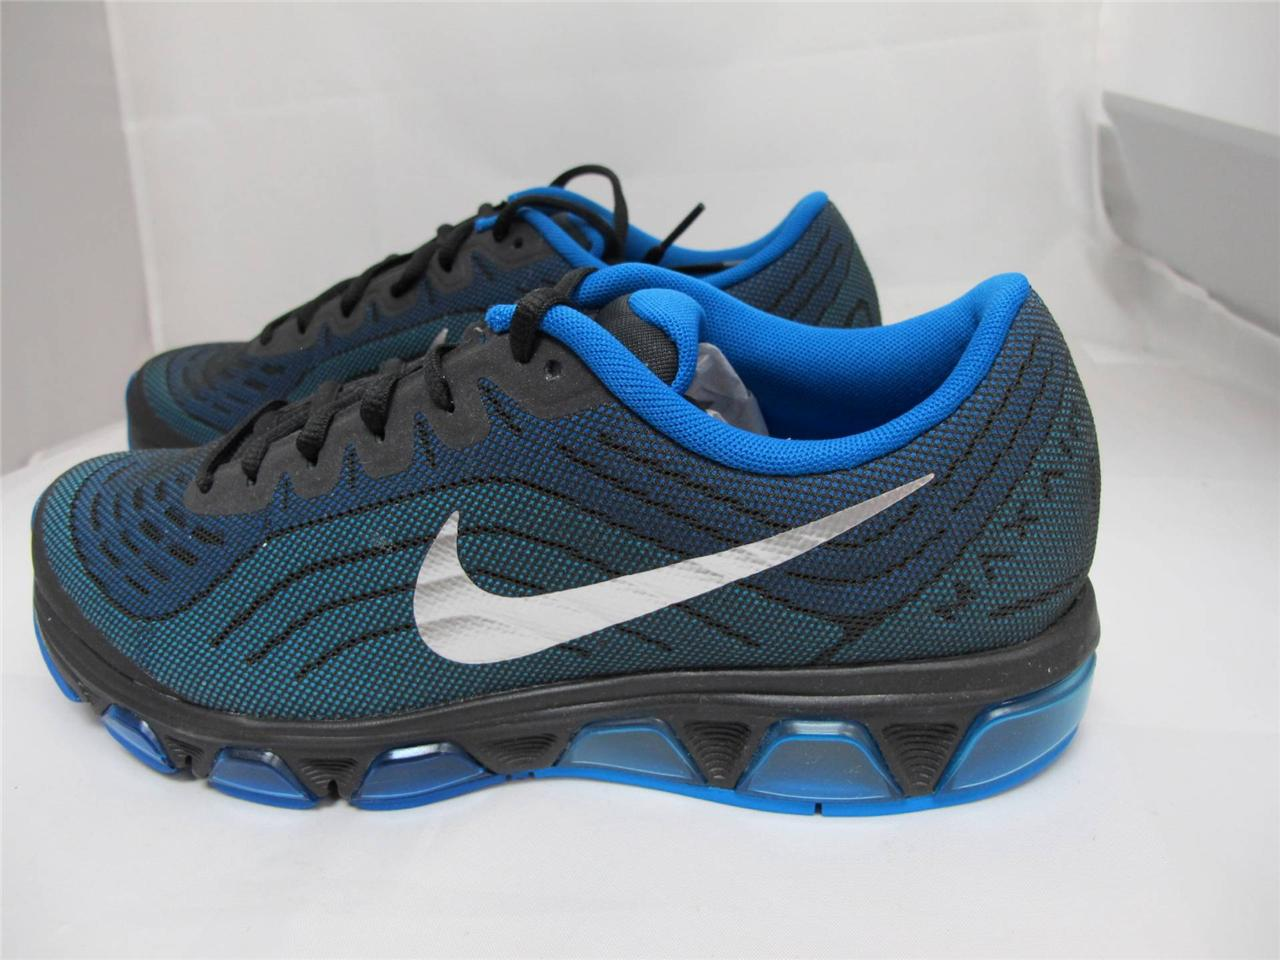 Nike Air Max Tailwind 6 Hommes - Itm 111415664121 Nav 3dsearch Code Promo